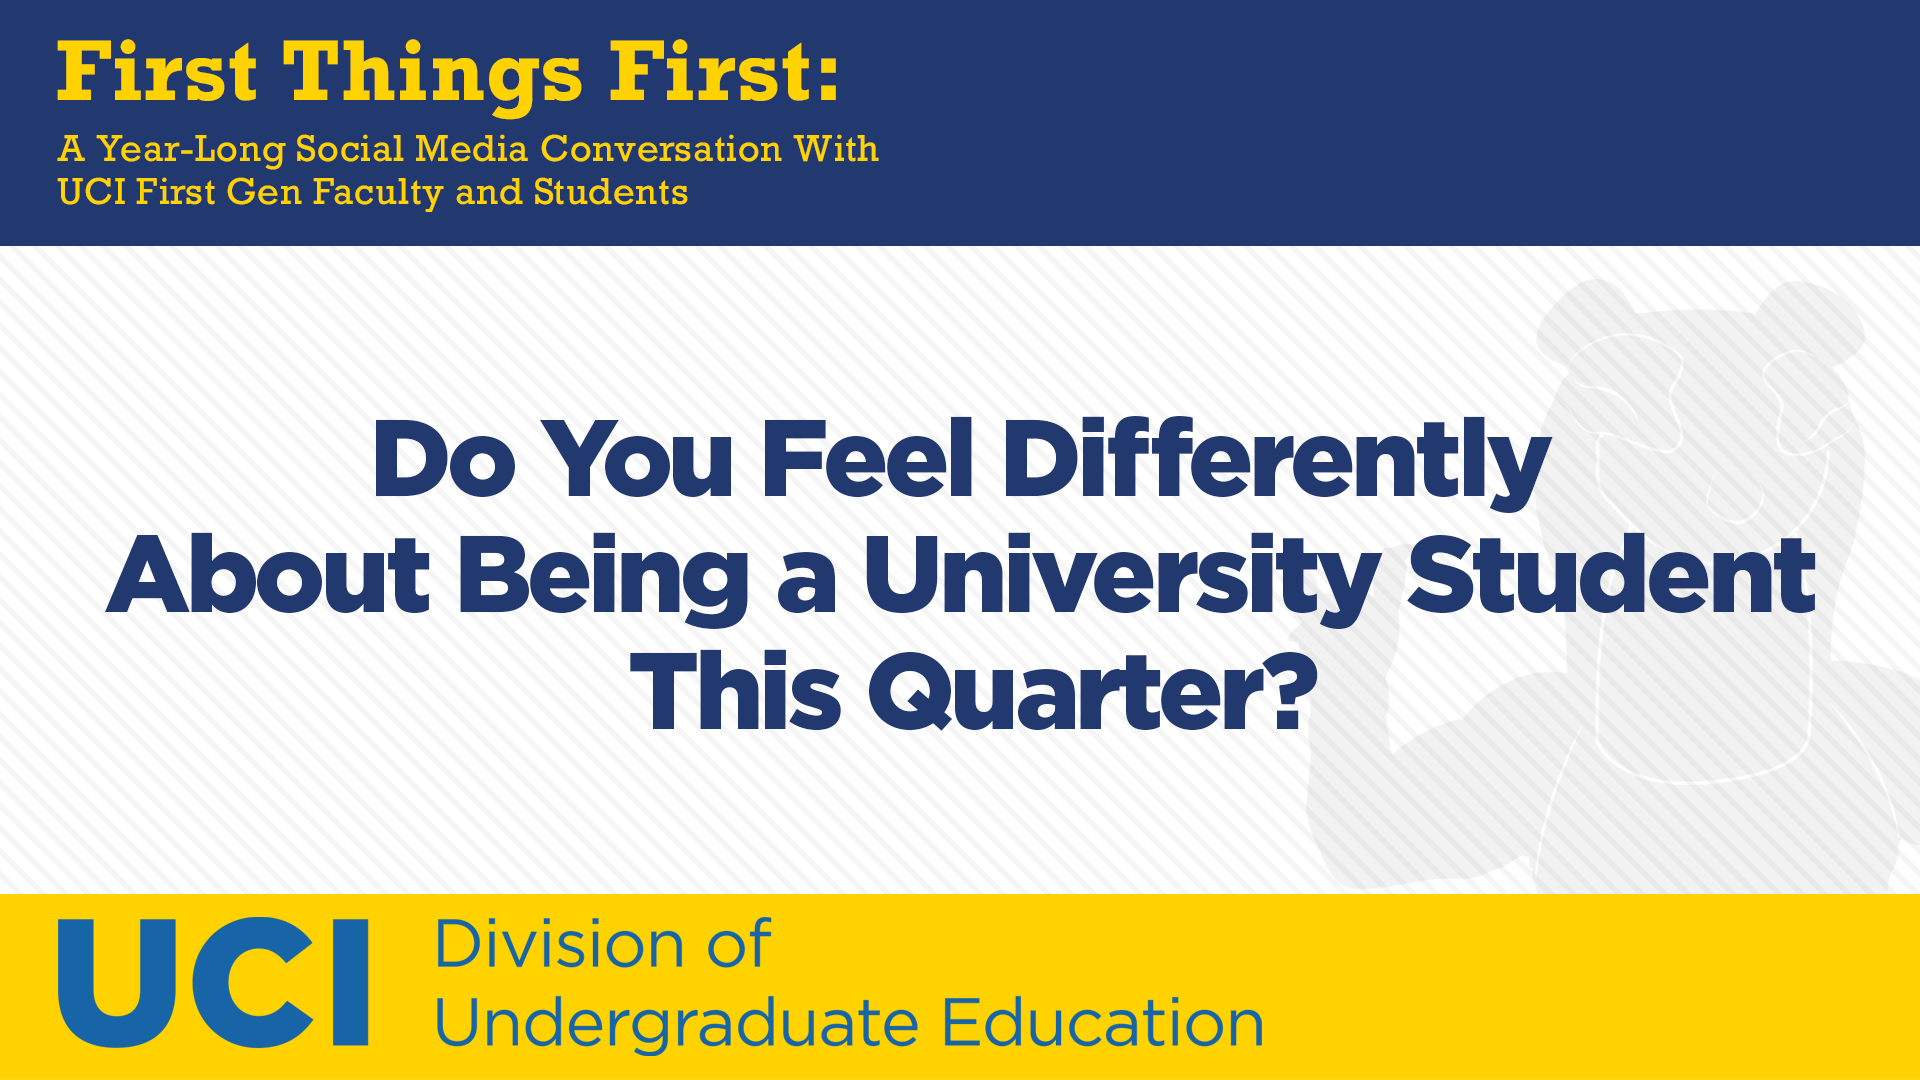 Do You Feel Differently About Being a University Student This Quarter?